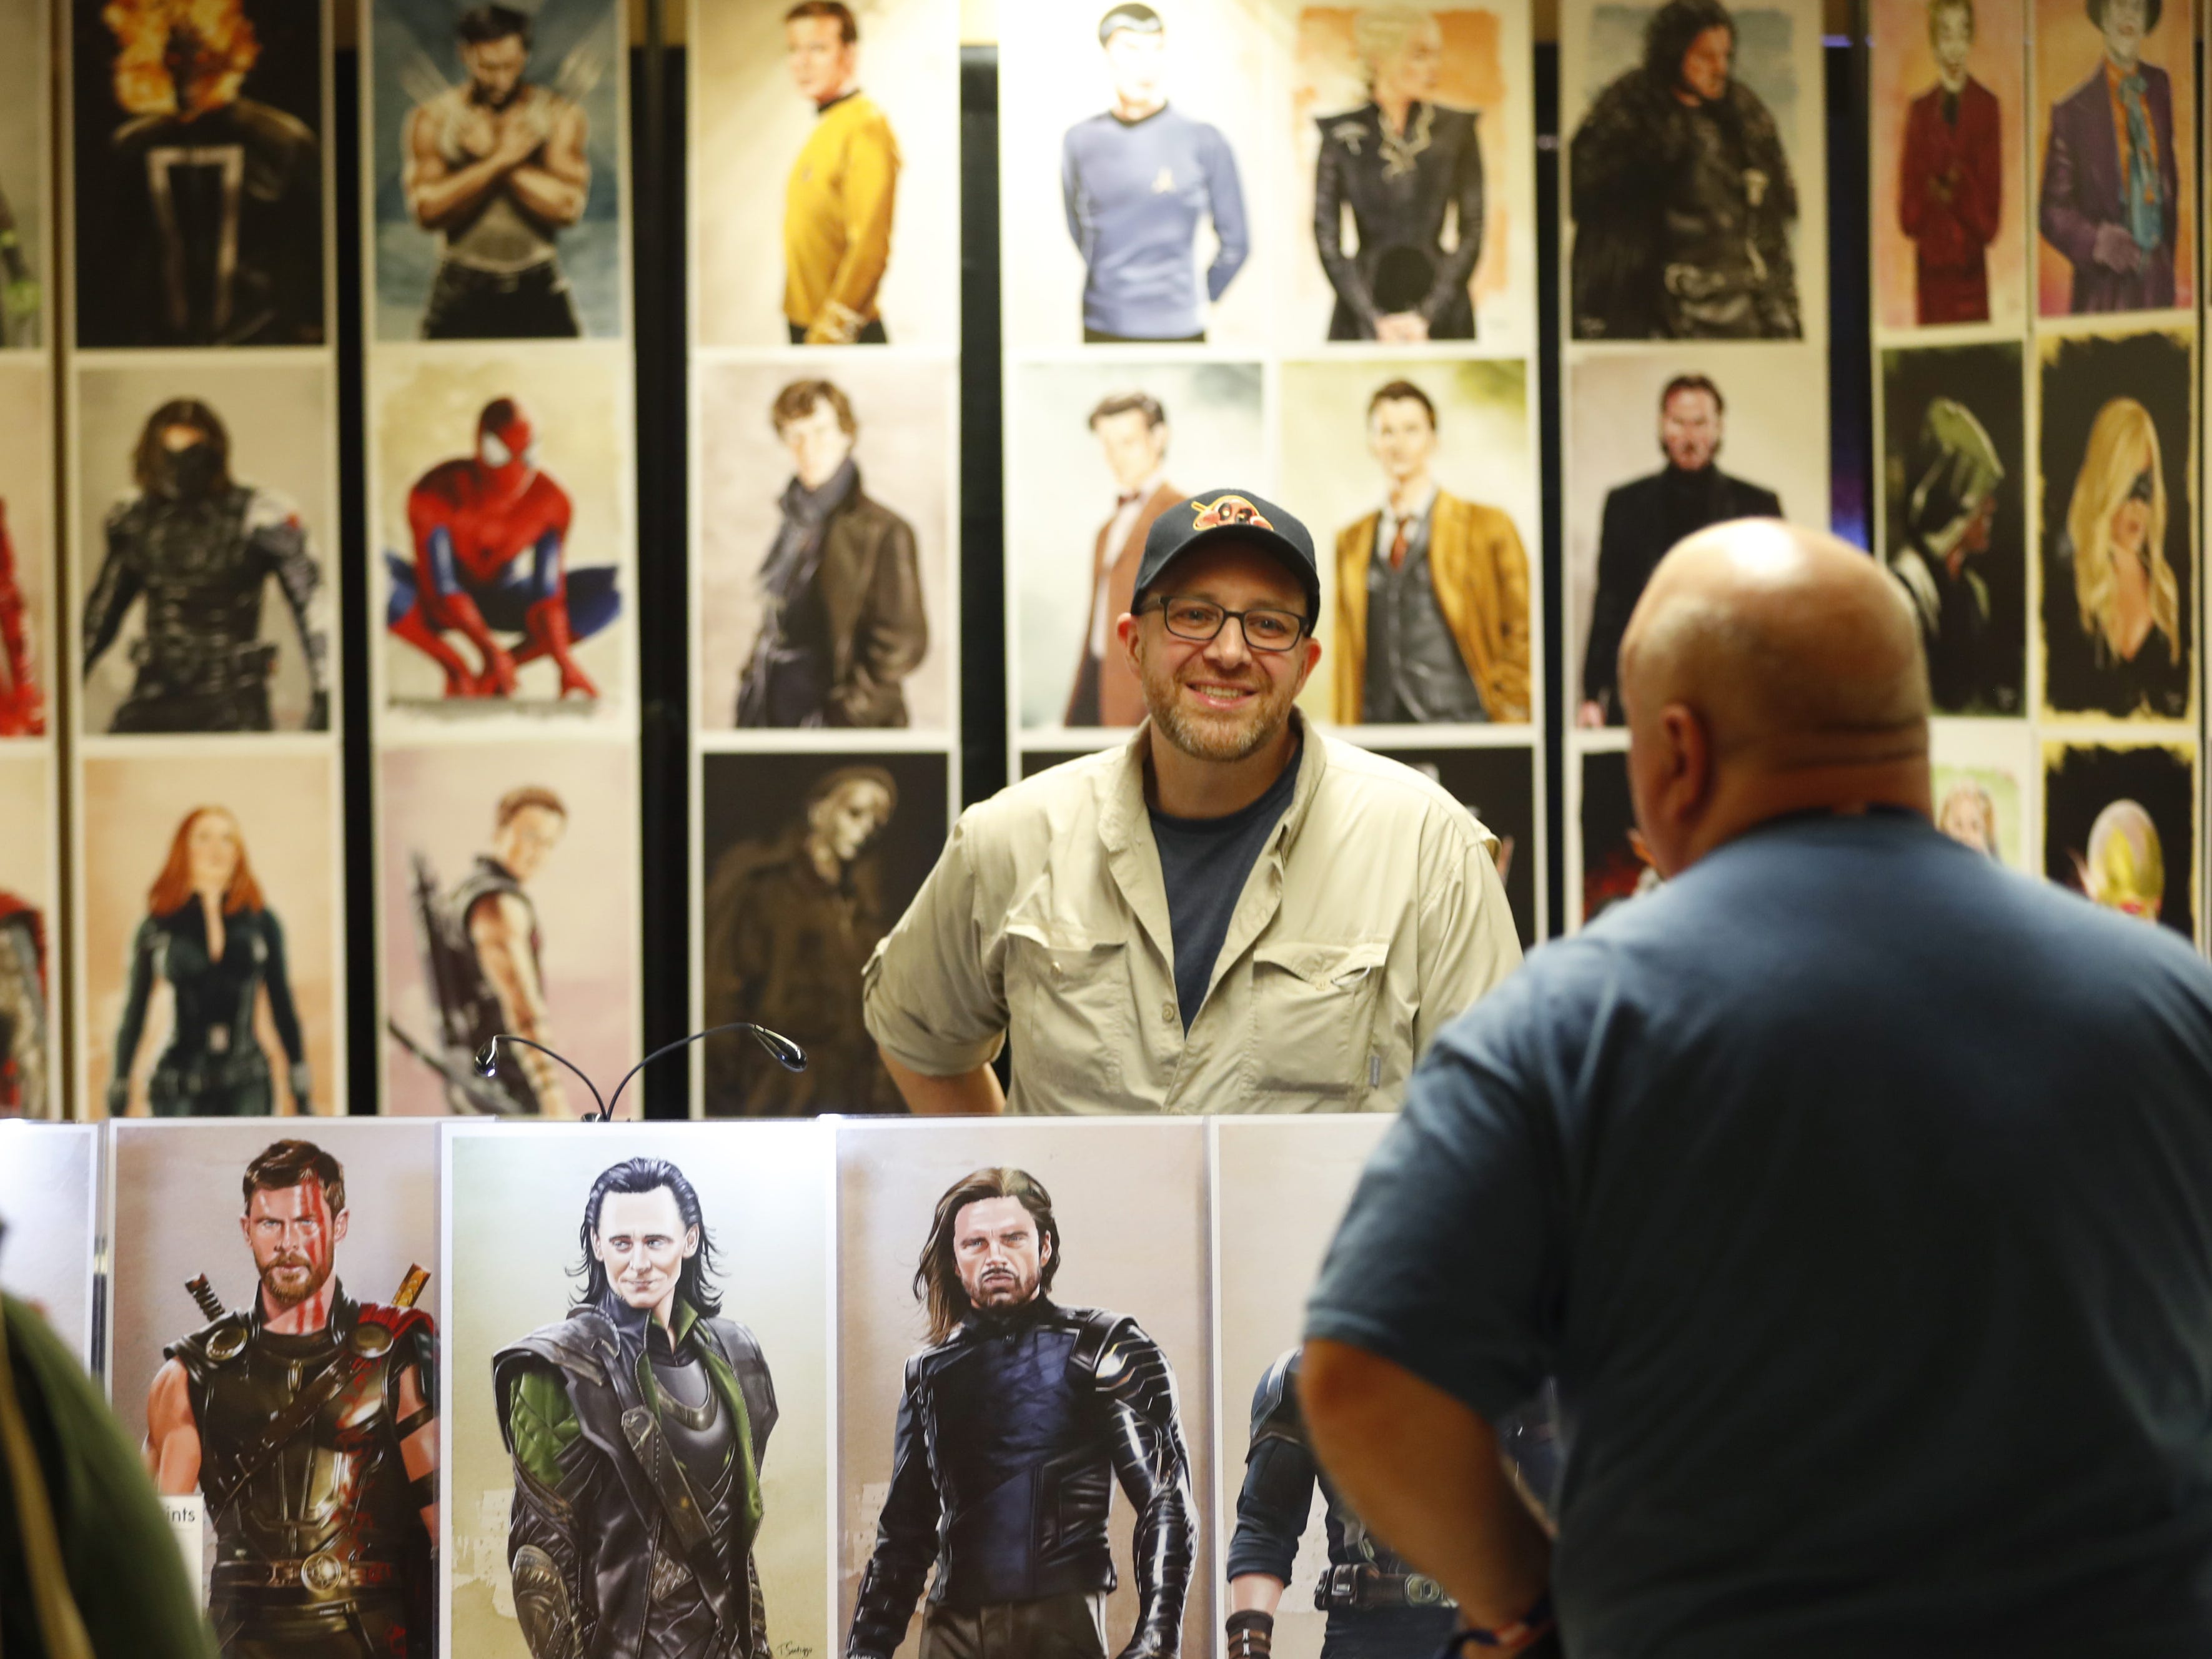 Tony Santiago sells his portraits of famous characters at his booth during the opening day of Ace Comic Con 2019 at Gila River Arena in Glendale, Ariz. on Jan. 11, 2019.